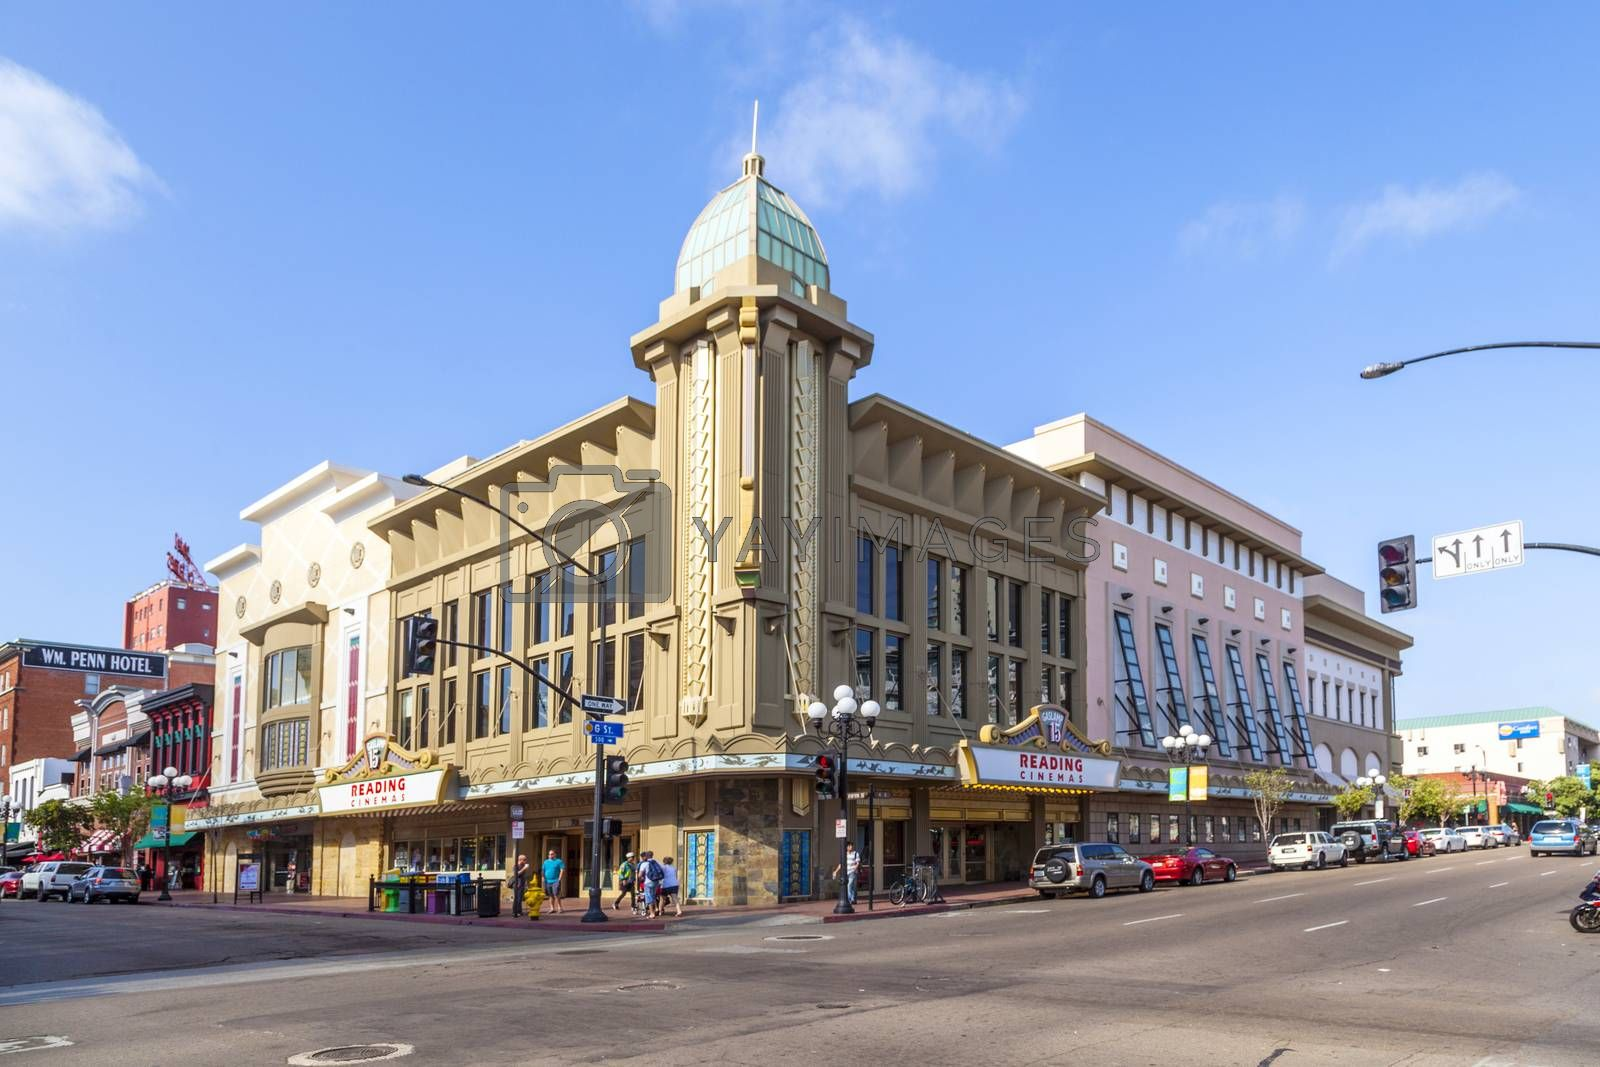 SAN DIEGO, USA - JUNE 11, 2012: facade of historic cinema Gaslamp  in San Diego, USA. Since 2010, it is operated by Reading Cinemas ansd still serves as cinema.